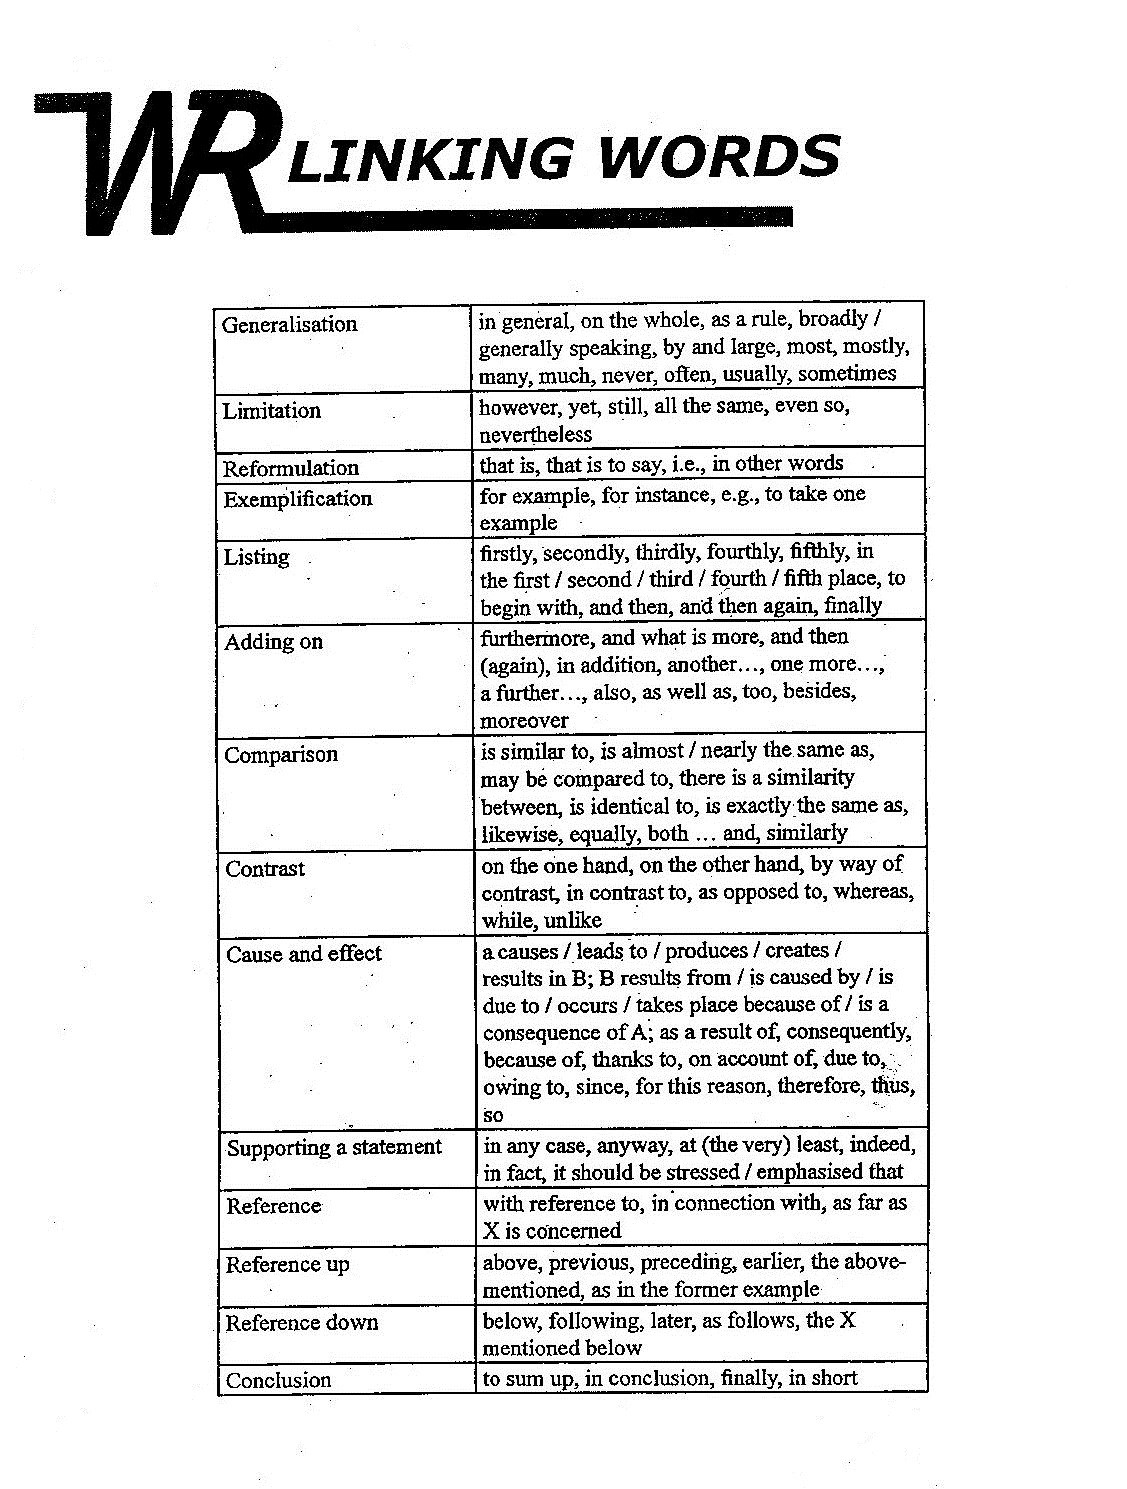 003 Essay Example Connecting Words For Essays Greed French Paragraph On To Start Conclusion In An Stmlk Begin Persuasive The First Body Argumentative Off Sentence Incredible Academic Ielts Full